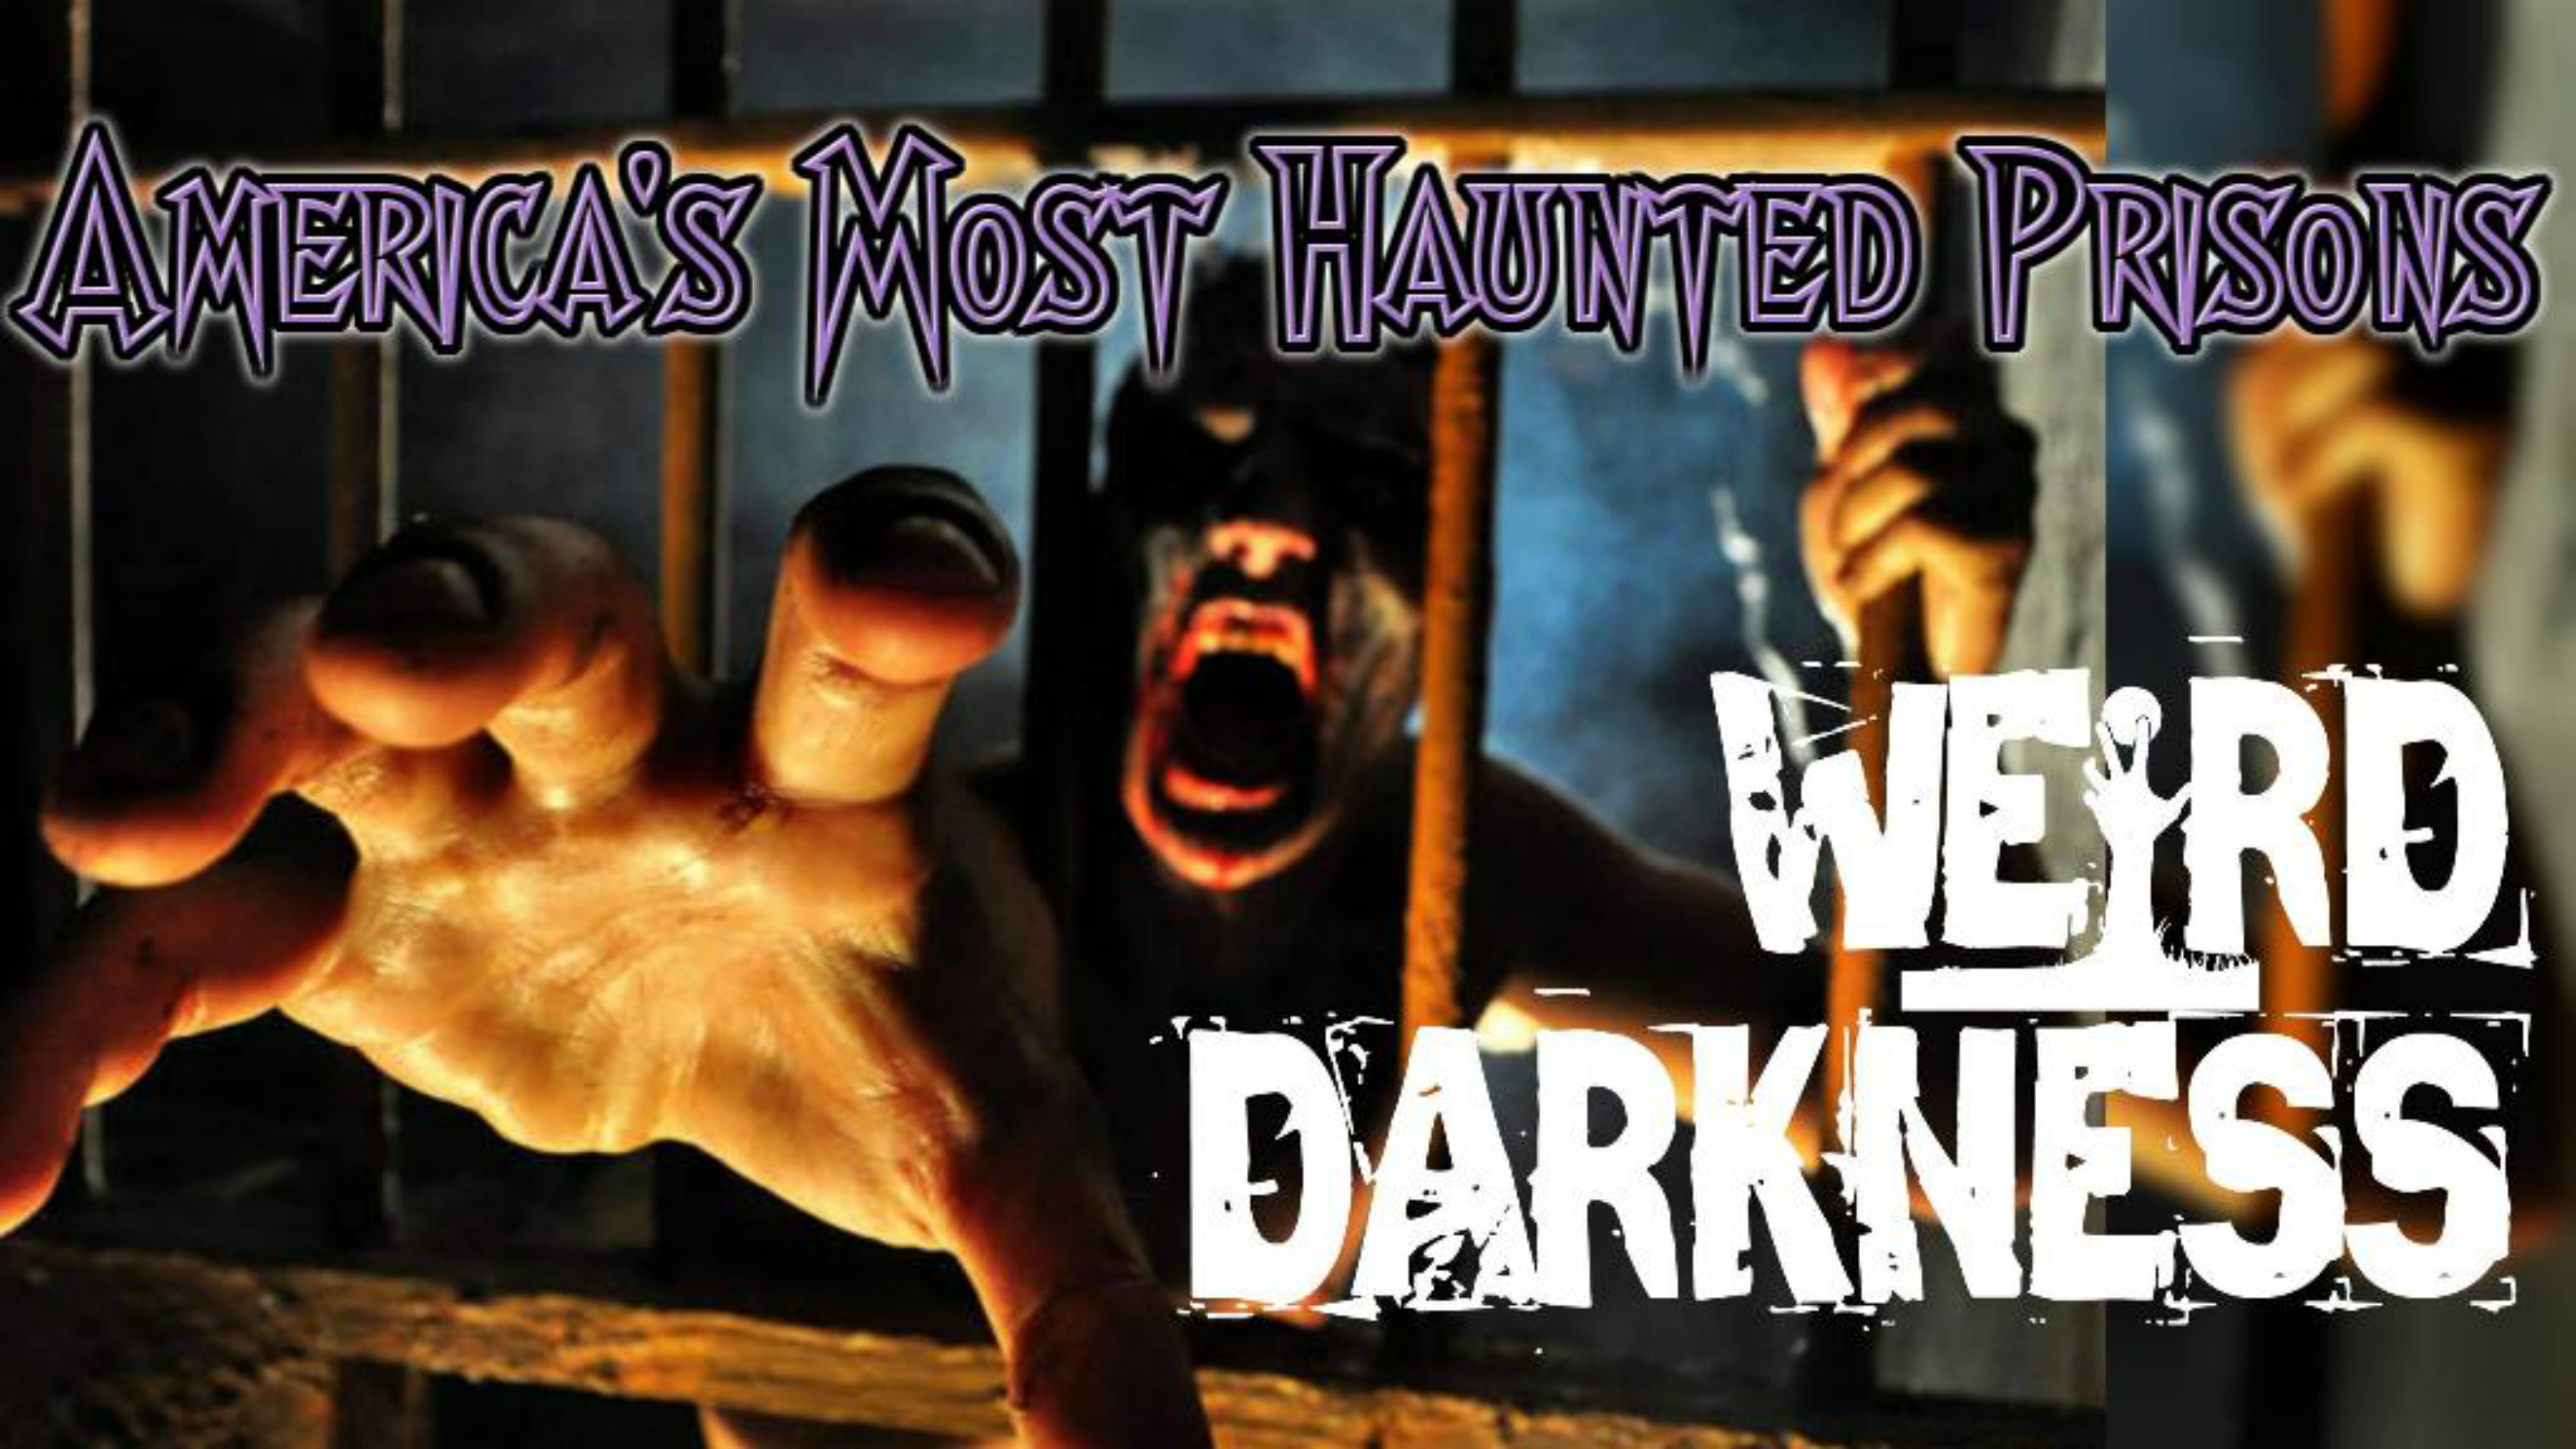 """""""America's Most Haunted Prisons"""" and 3 More Creepy Paranormal Stories! #WeirdDarkness"""